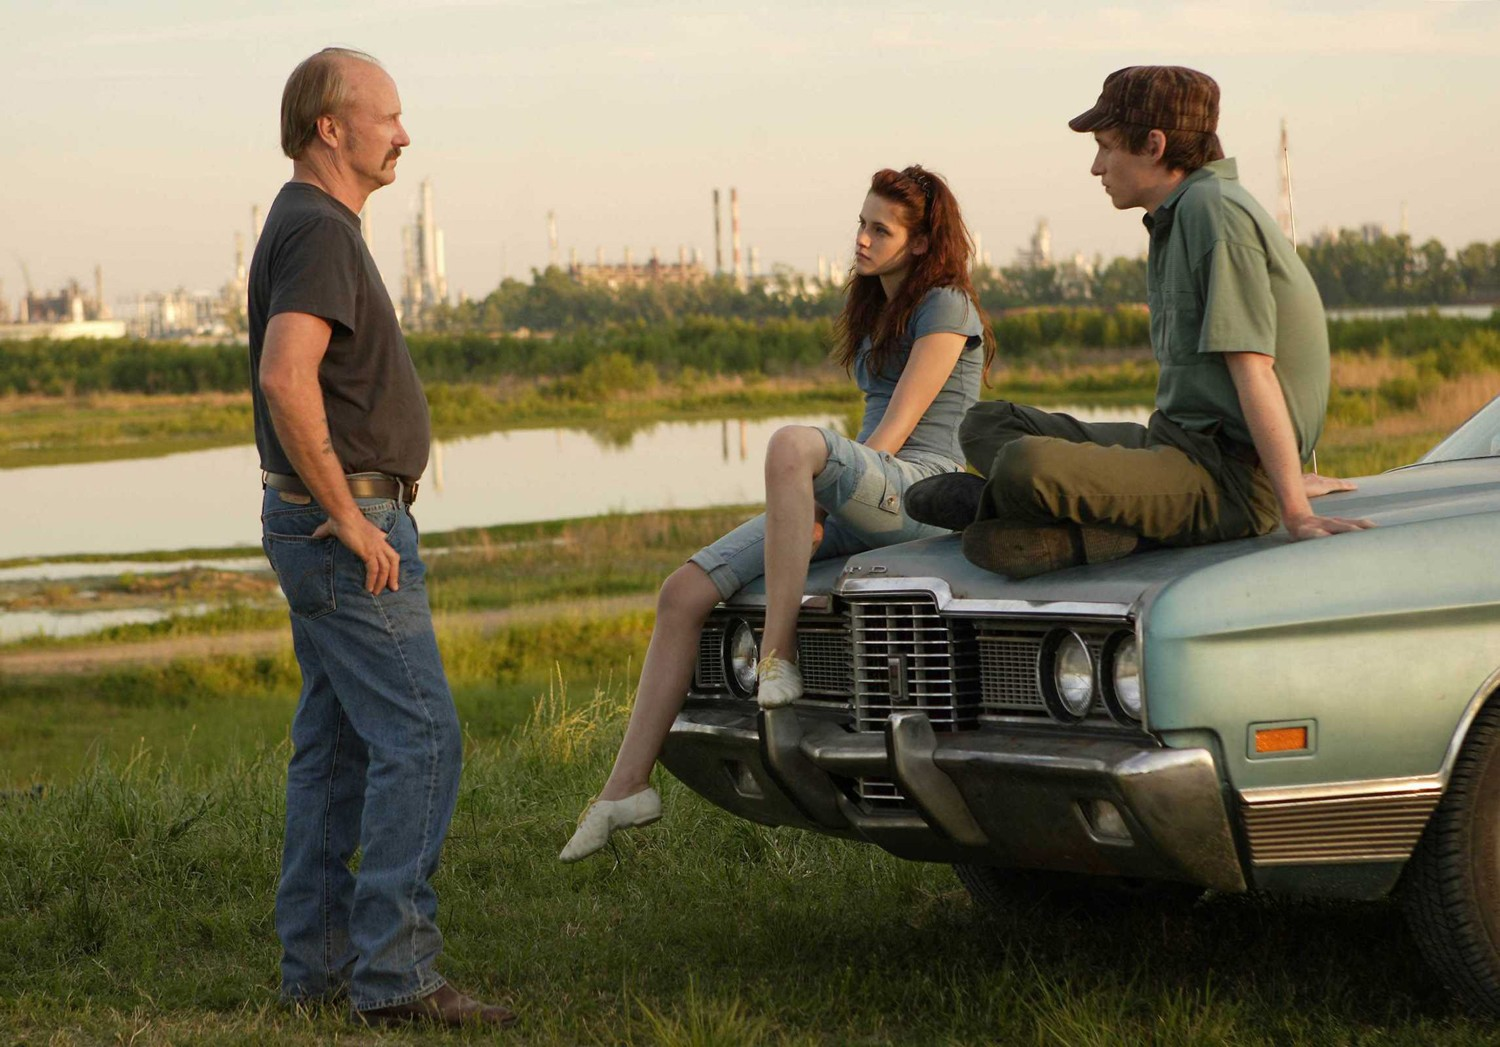 Eddie Redmayne,Kristen Stewart,William Hurt